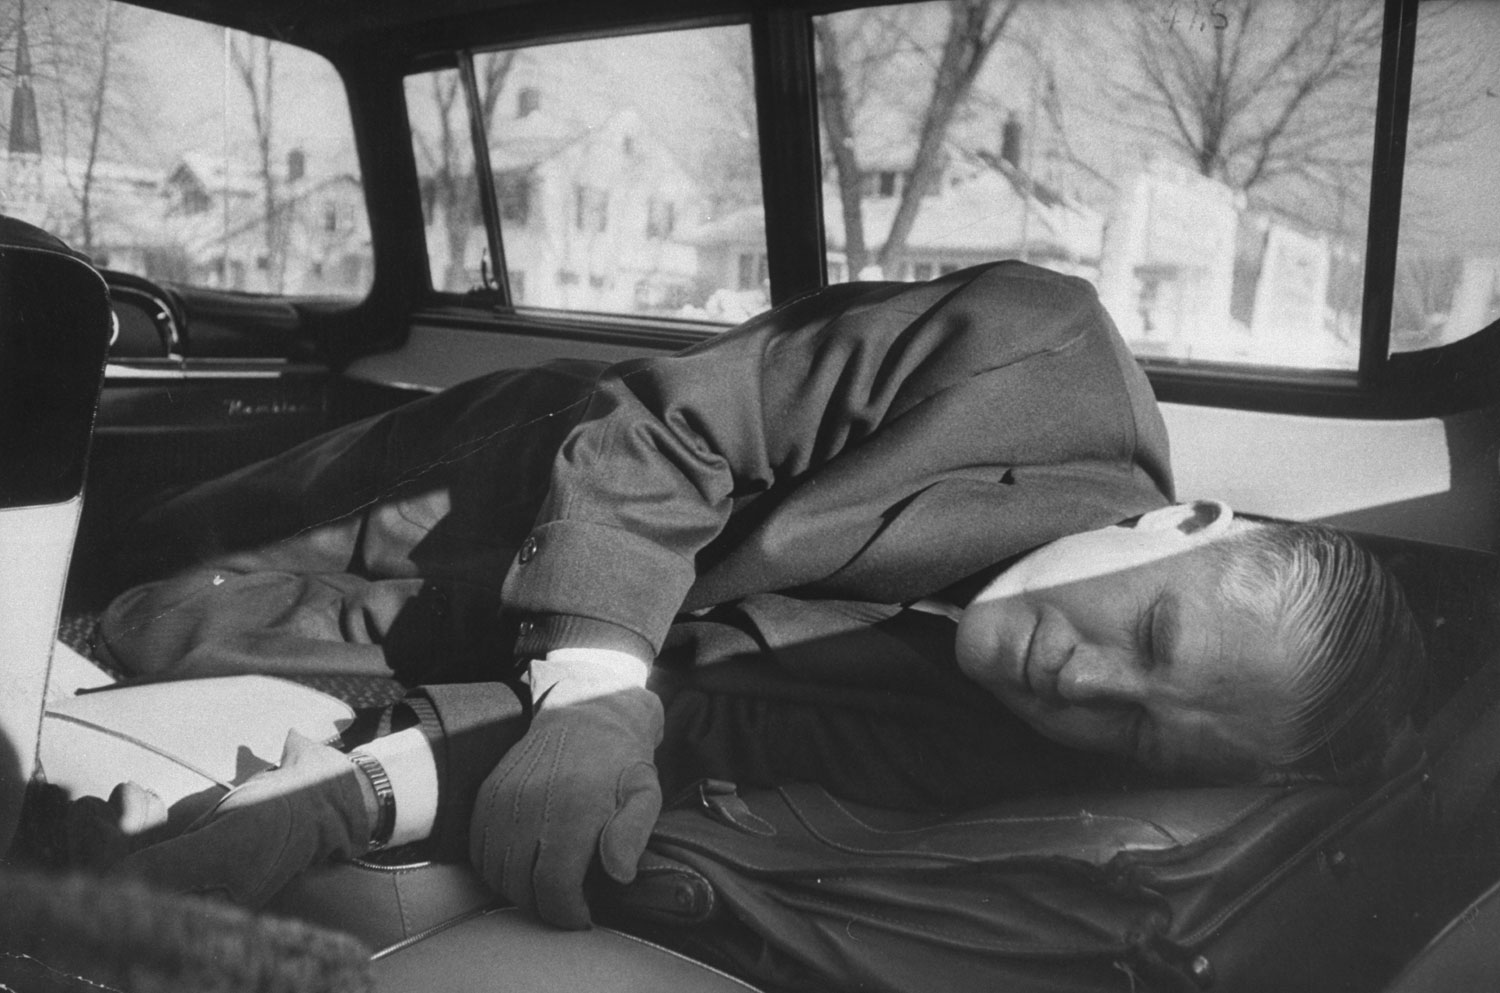 <b>Caption from LIFE.</b> From airport to Milwaukee [auto] body plant Romney takes catnap in Rambler station wagon built-in bed, with briefcase as pillow.